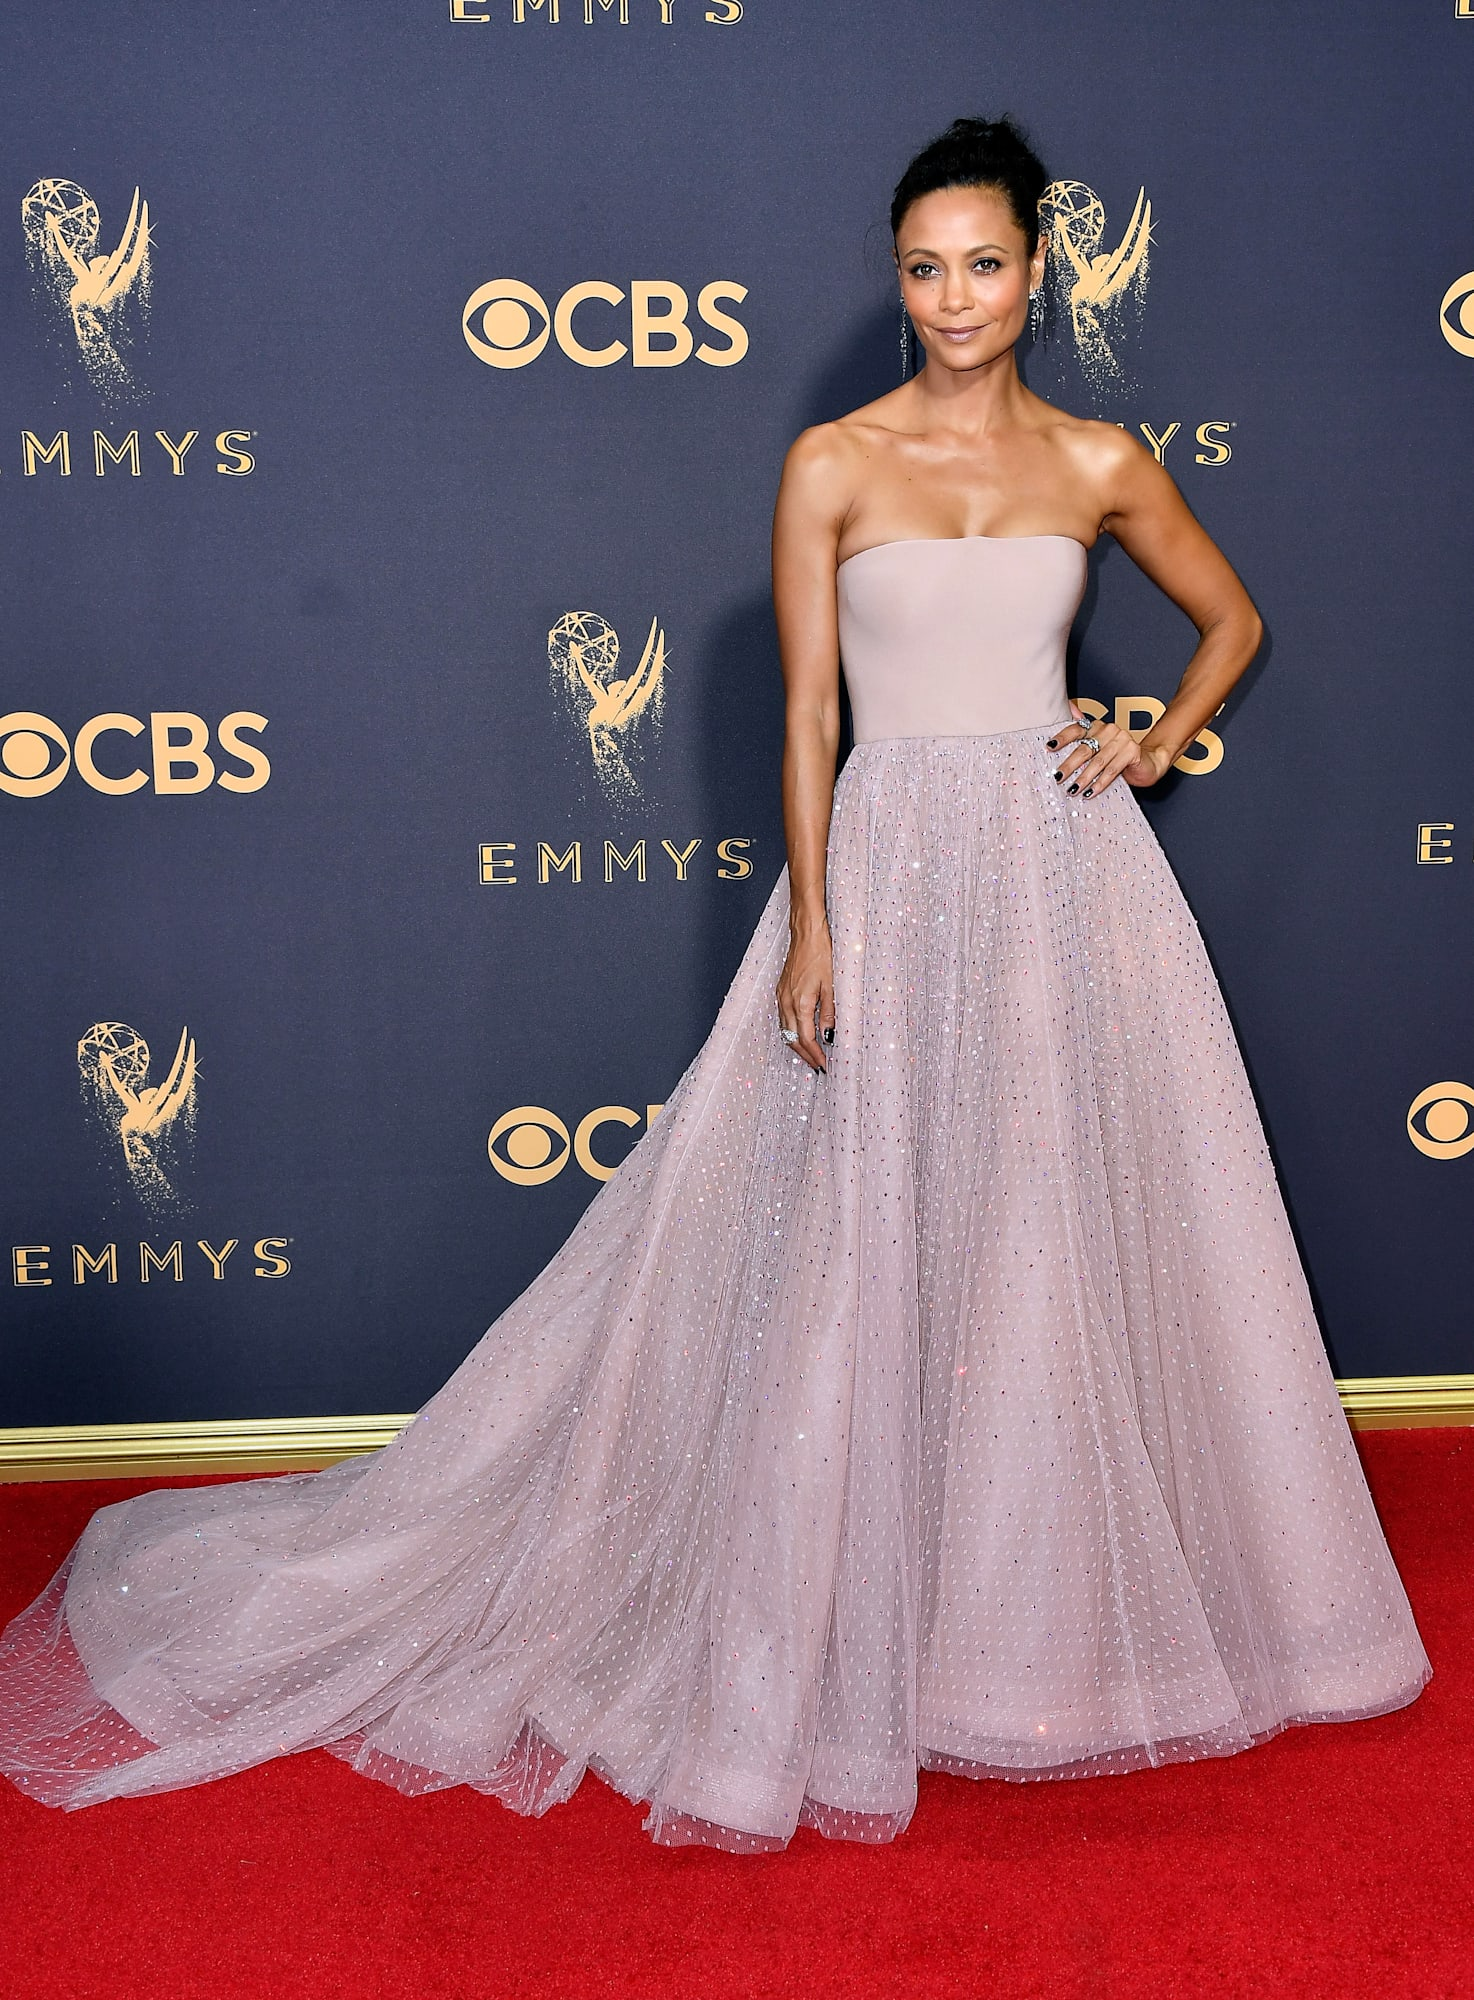 2017 Emmy Awards: 10 prettiest dresses - AOL Lifestyle